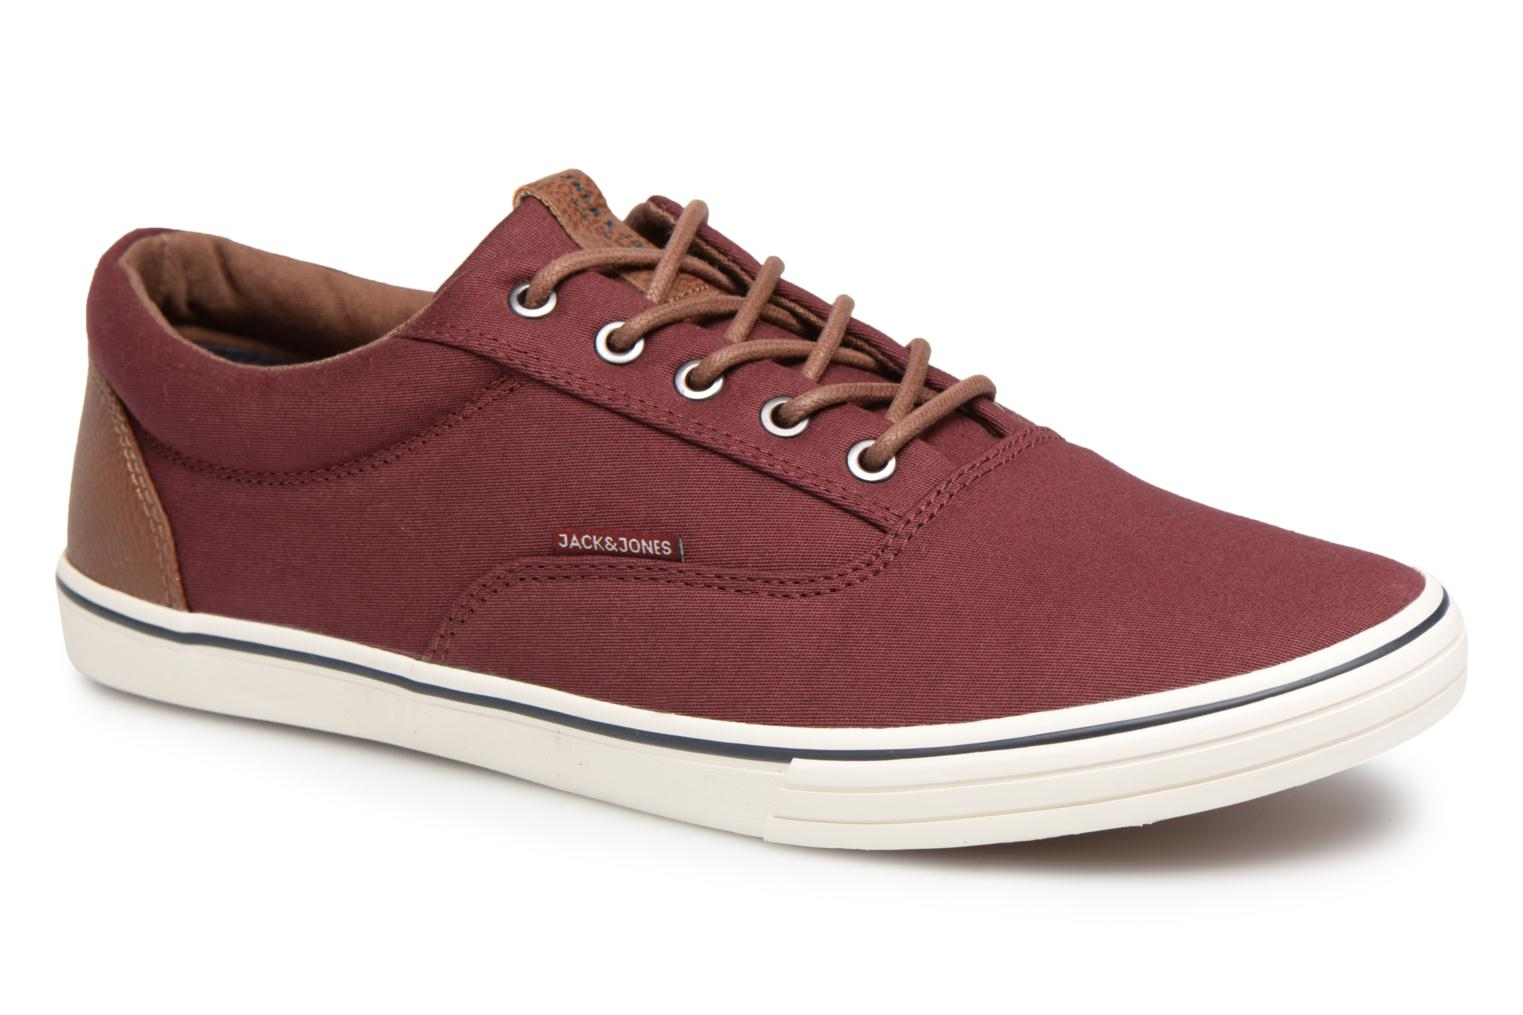 Sneakers Jack & Jones Bordeaux